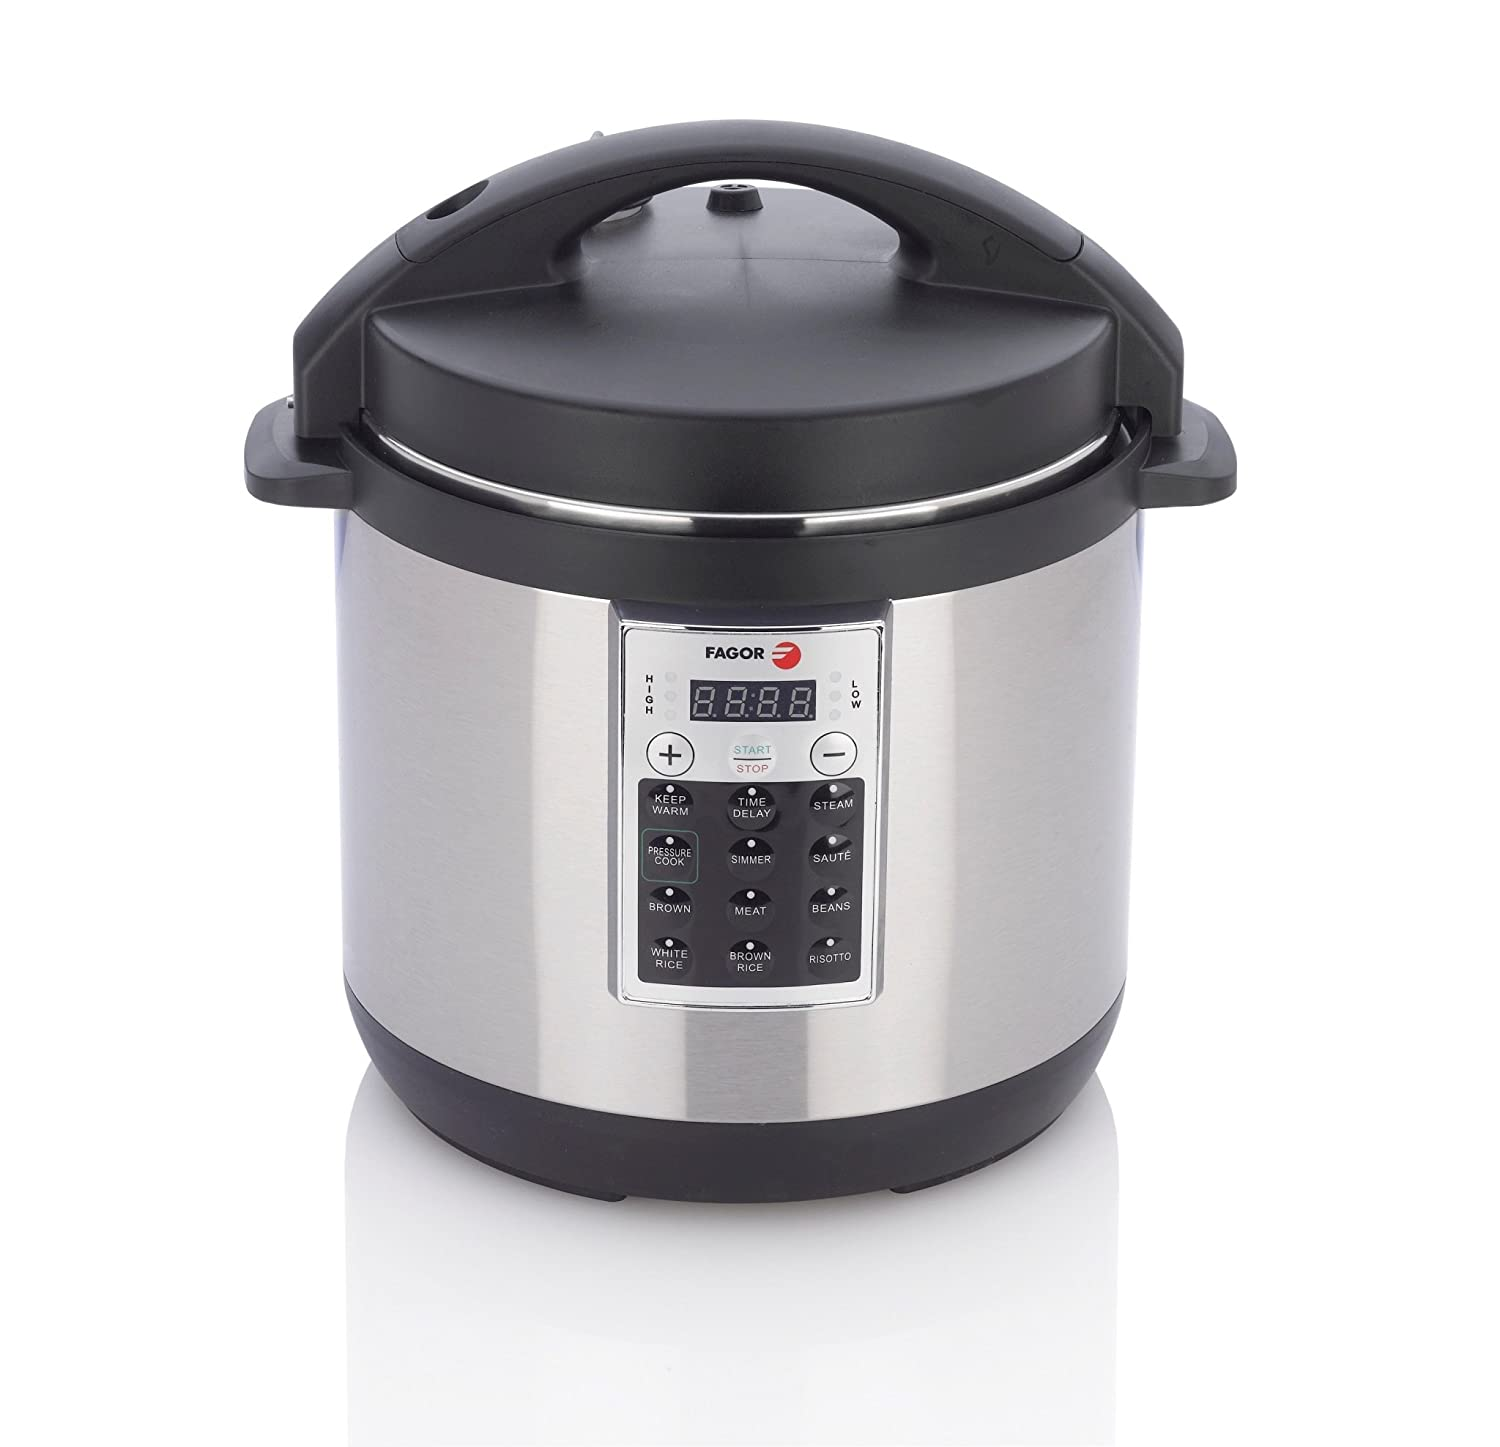 Fagor Premium Electric Pressure and Rice Cooker (6 & 8-Quart)